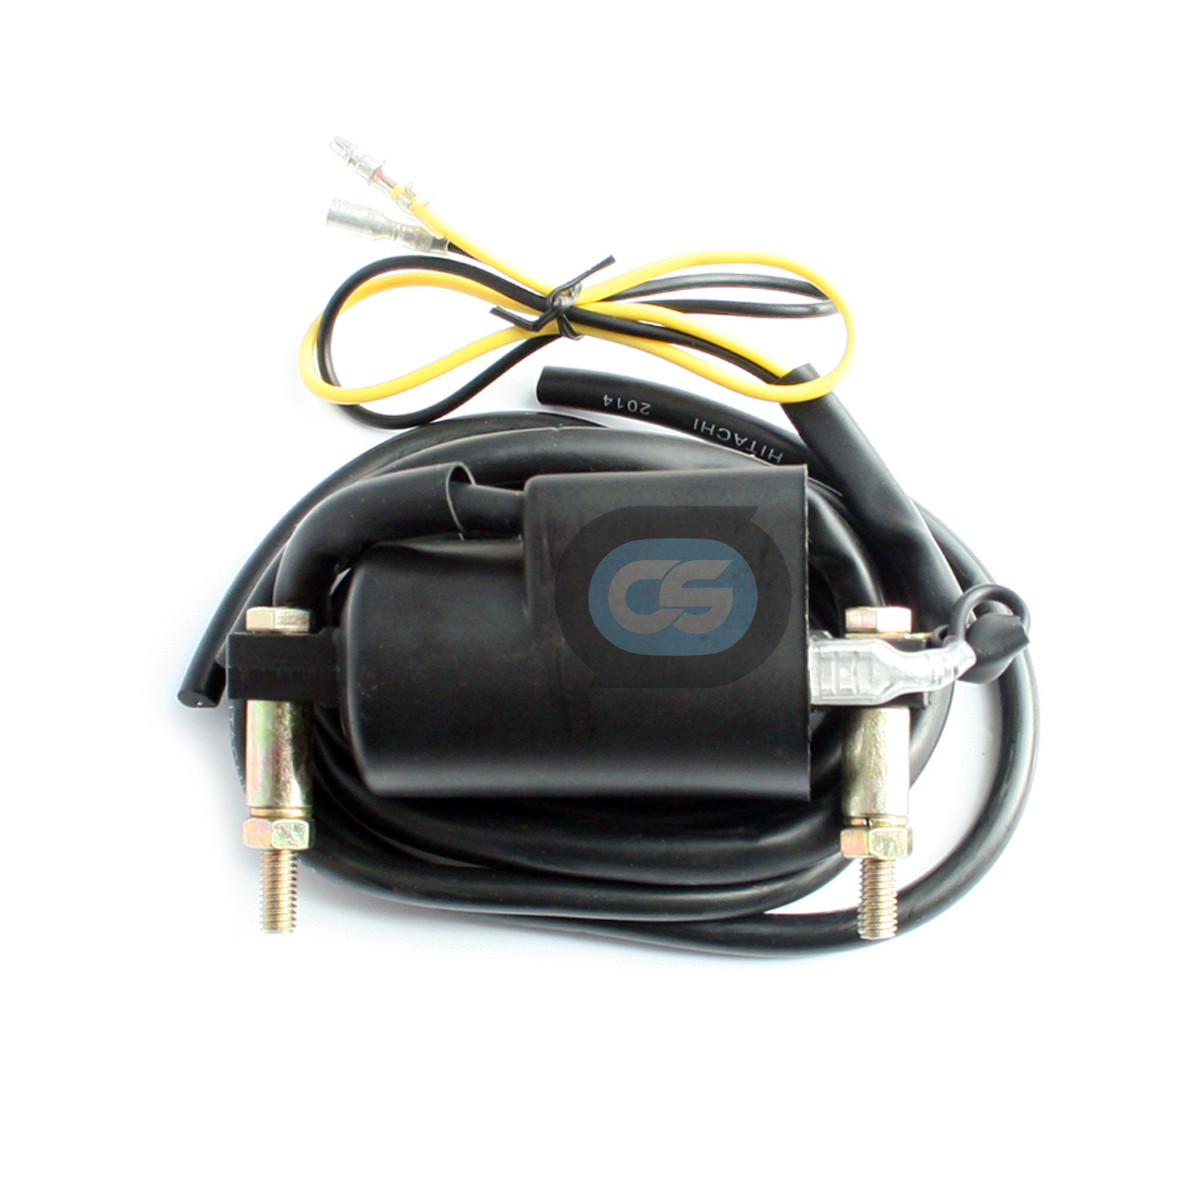 2004 2005 3-PACK Ignition Coil for Yamaha RX Warrior LE Warranty